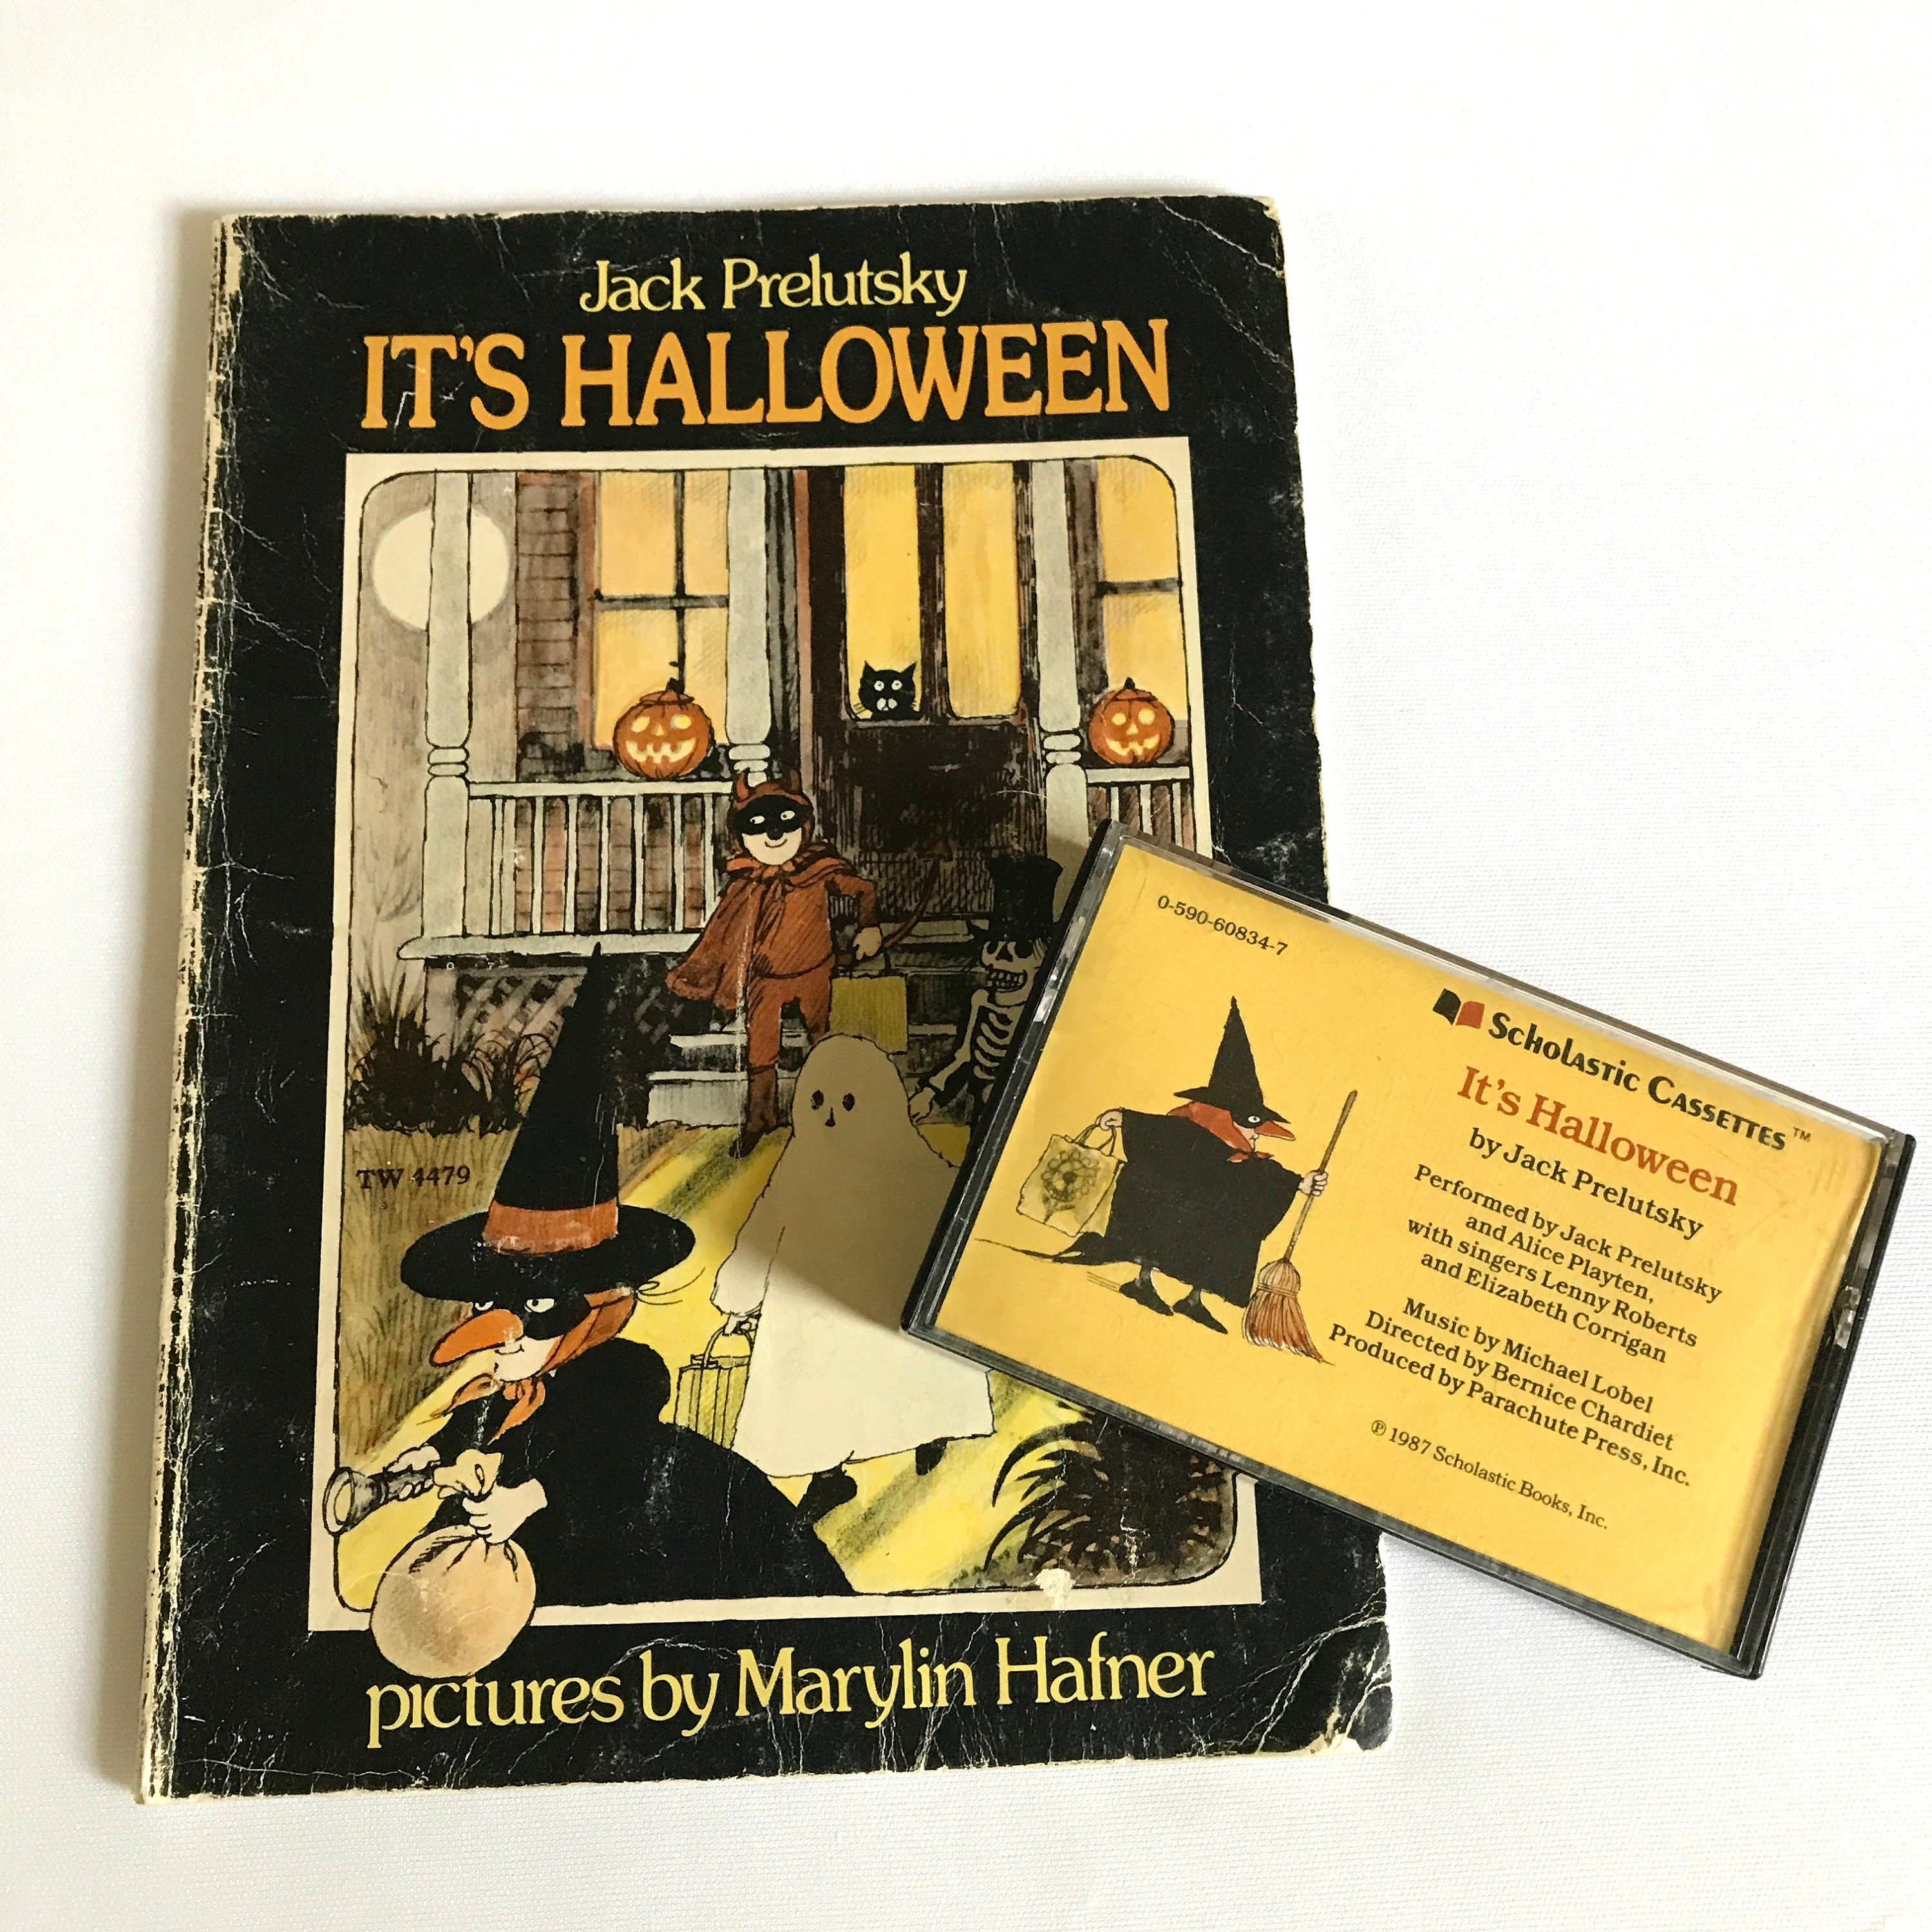 its halloween childrens book cassette tape set by jack prelutsky 1987 scholastic cassettes vintage paperback audio book set for kids